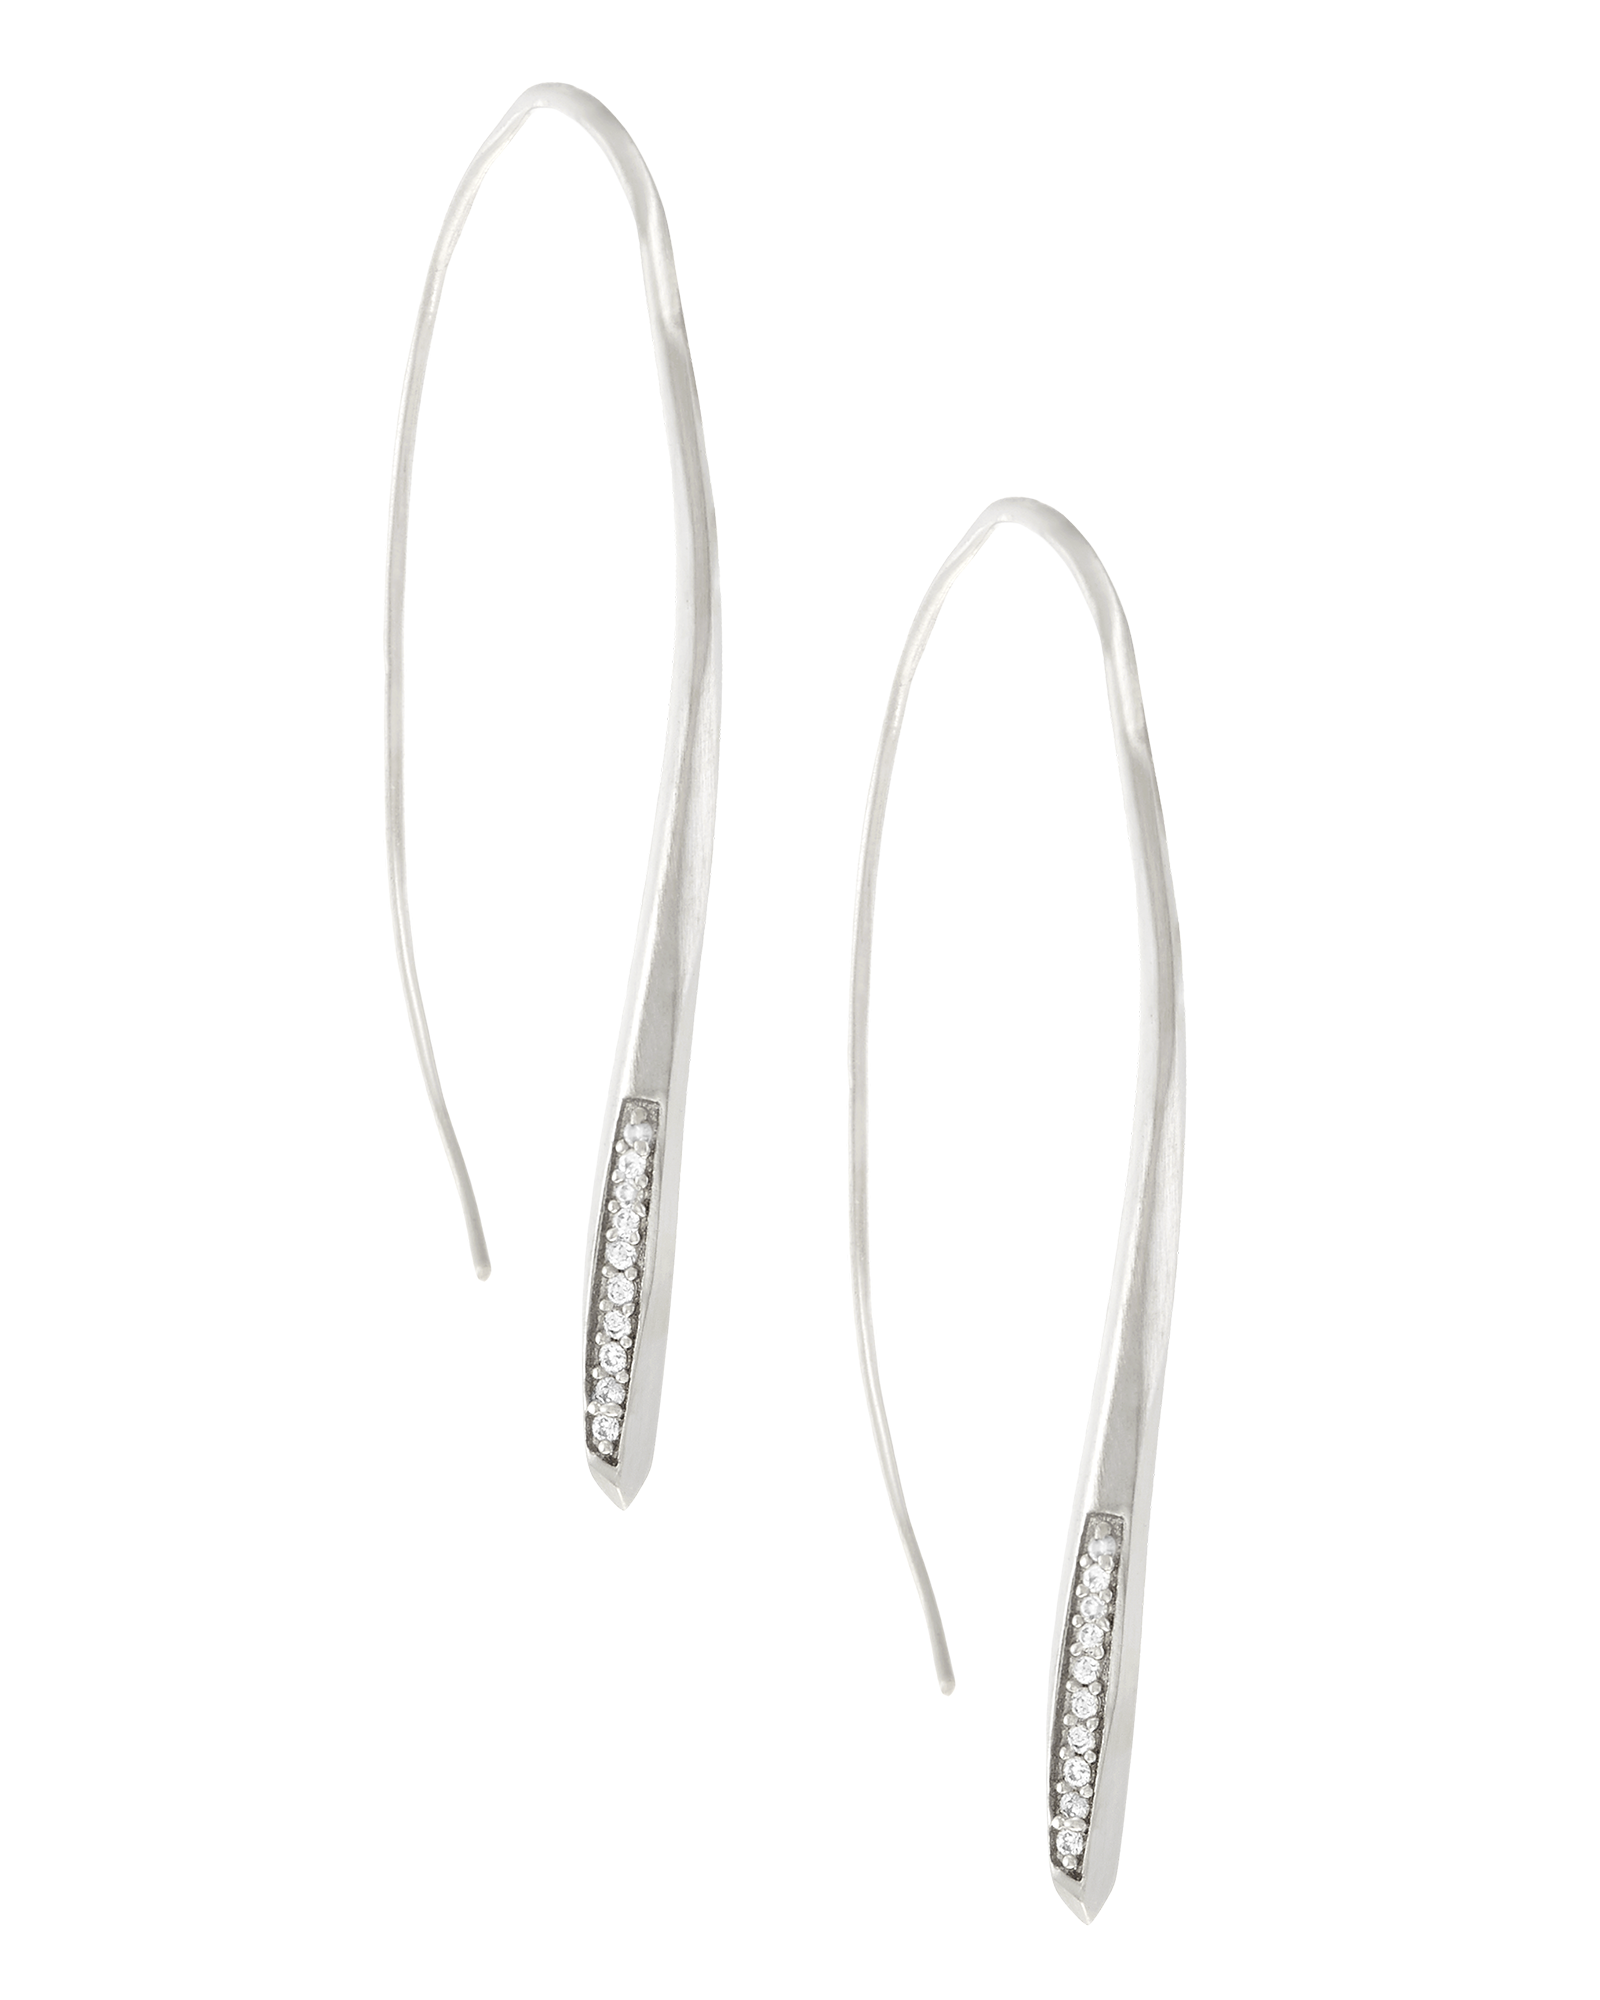 Julian Long Earrings